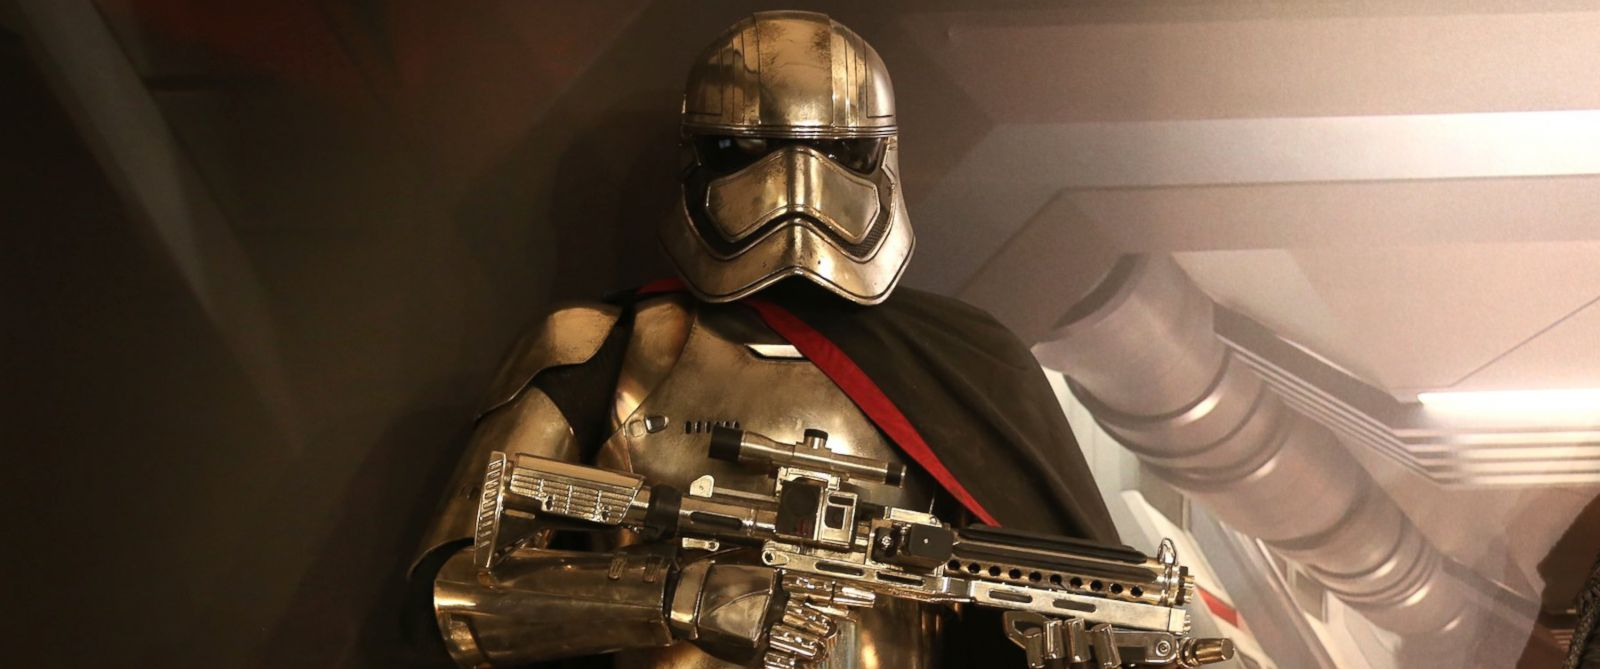 "PHOTO: A replicas on display of Star Wars character Captain Phasma, that will be in the new Star Wars film, ""The Force Awakens"" on Dec. 3, 2015 in Toronto."